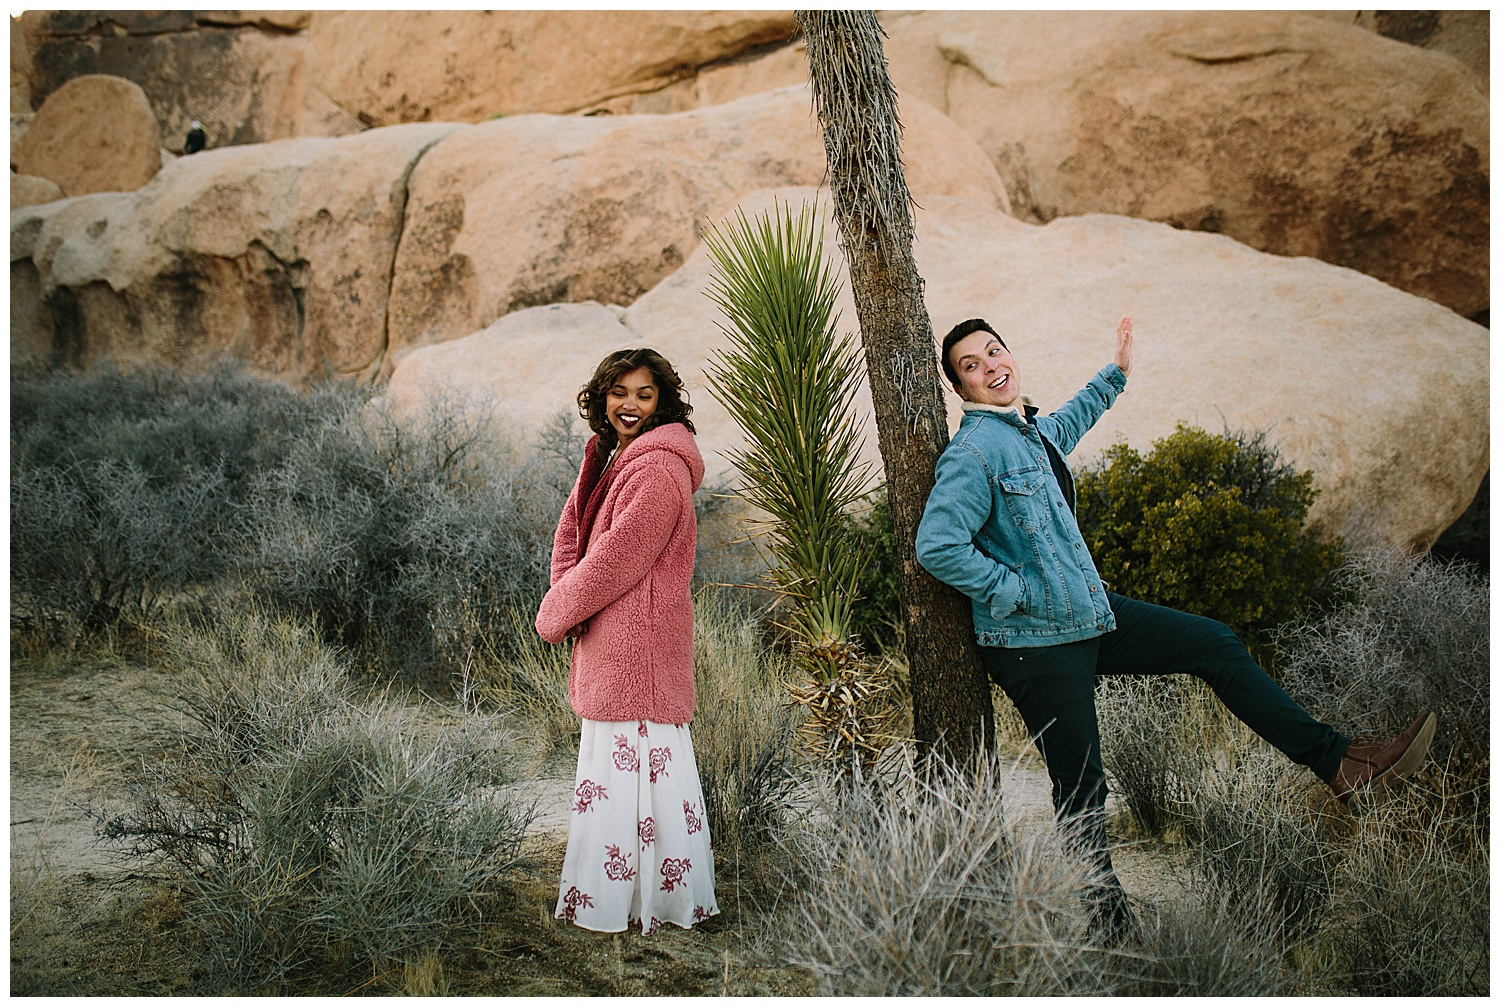 la.lifestyle.photography.session.engaged.malibu.joshuatree.kendralynnephotography-43.jpg